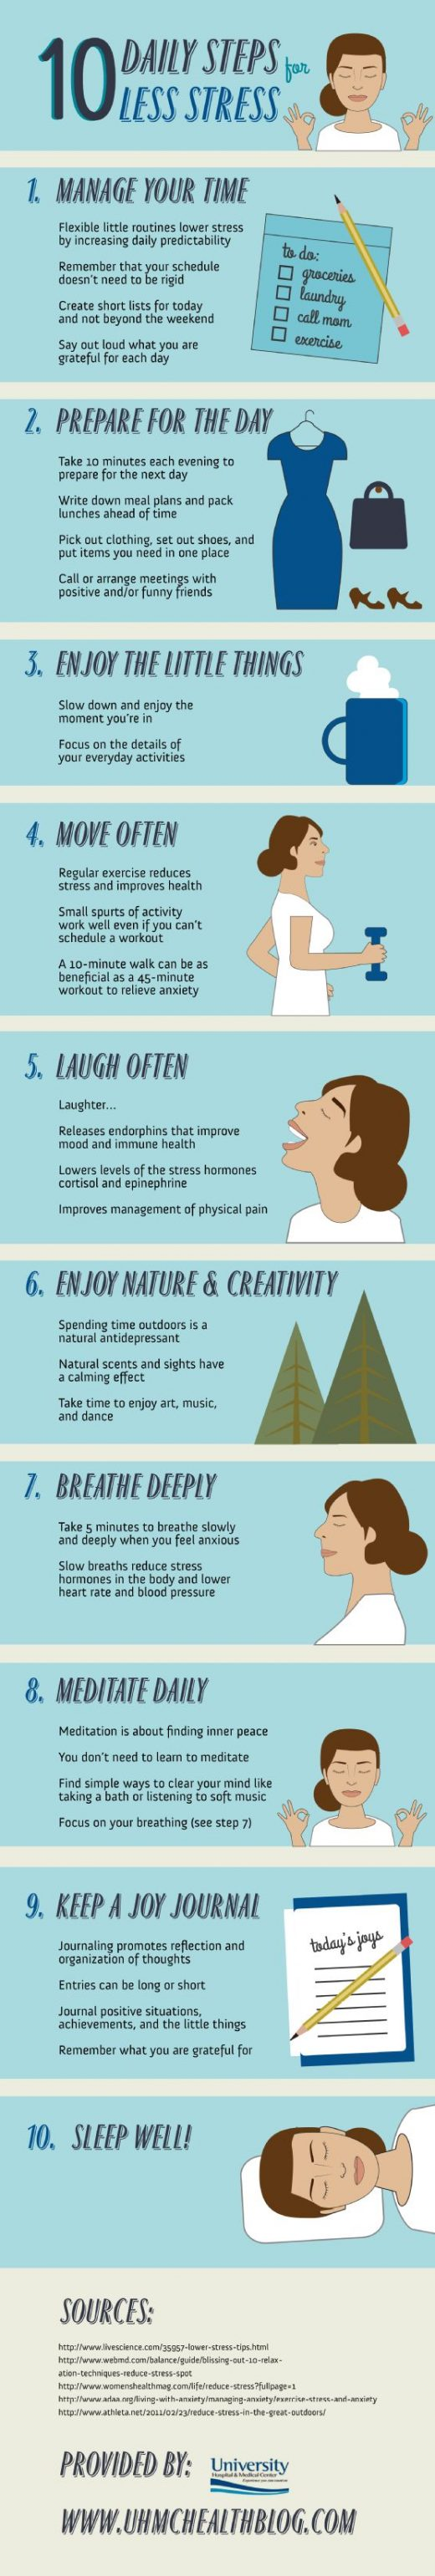 For tips on how to stress a little less every day: